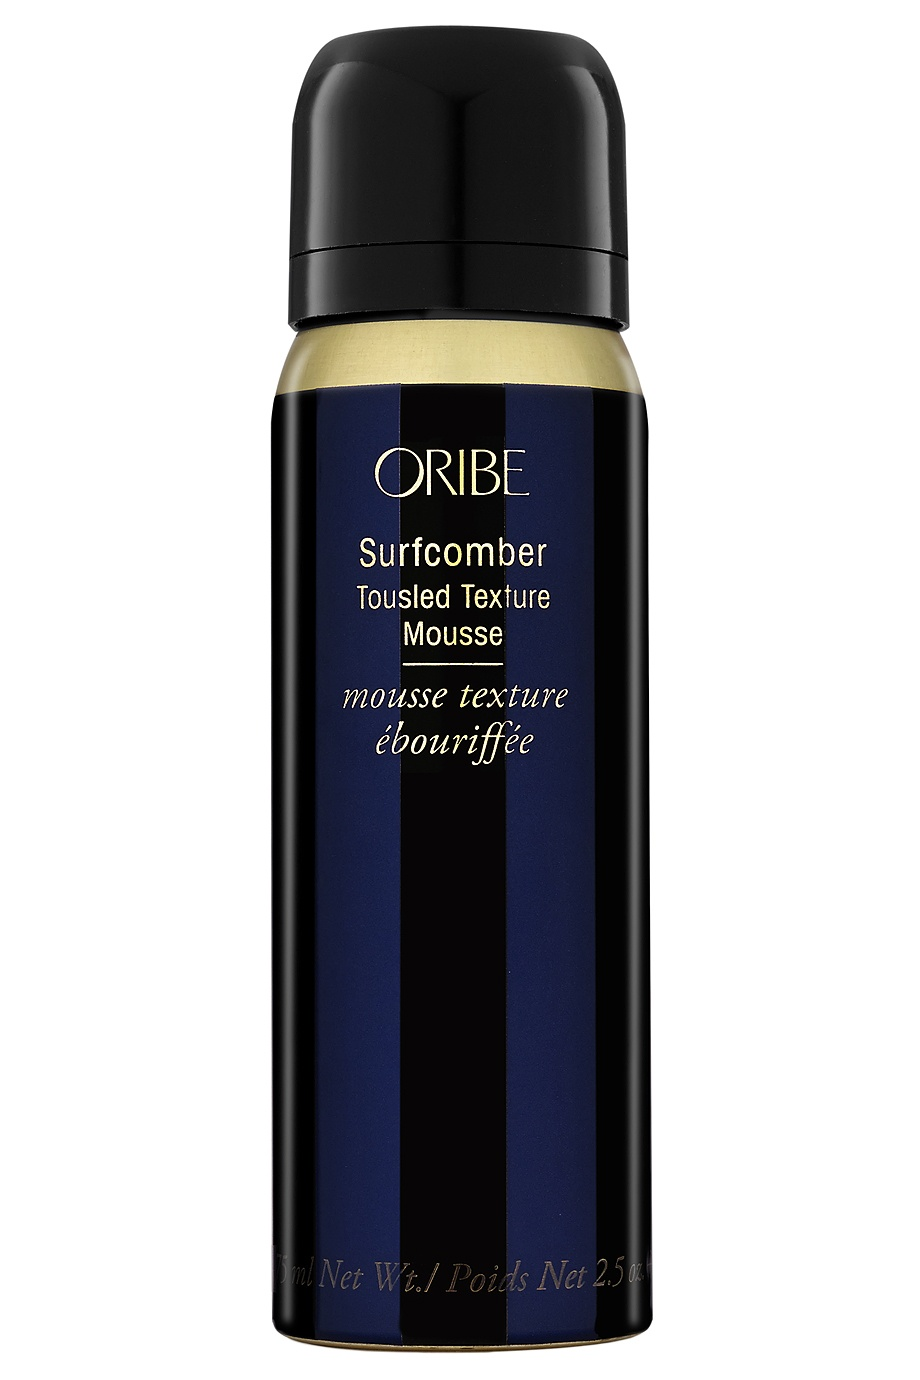 Текстурирующий мусс для создания локонов Surfcomber Tousled 75ml Oribe (фото)